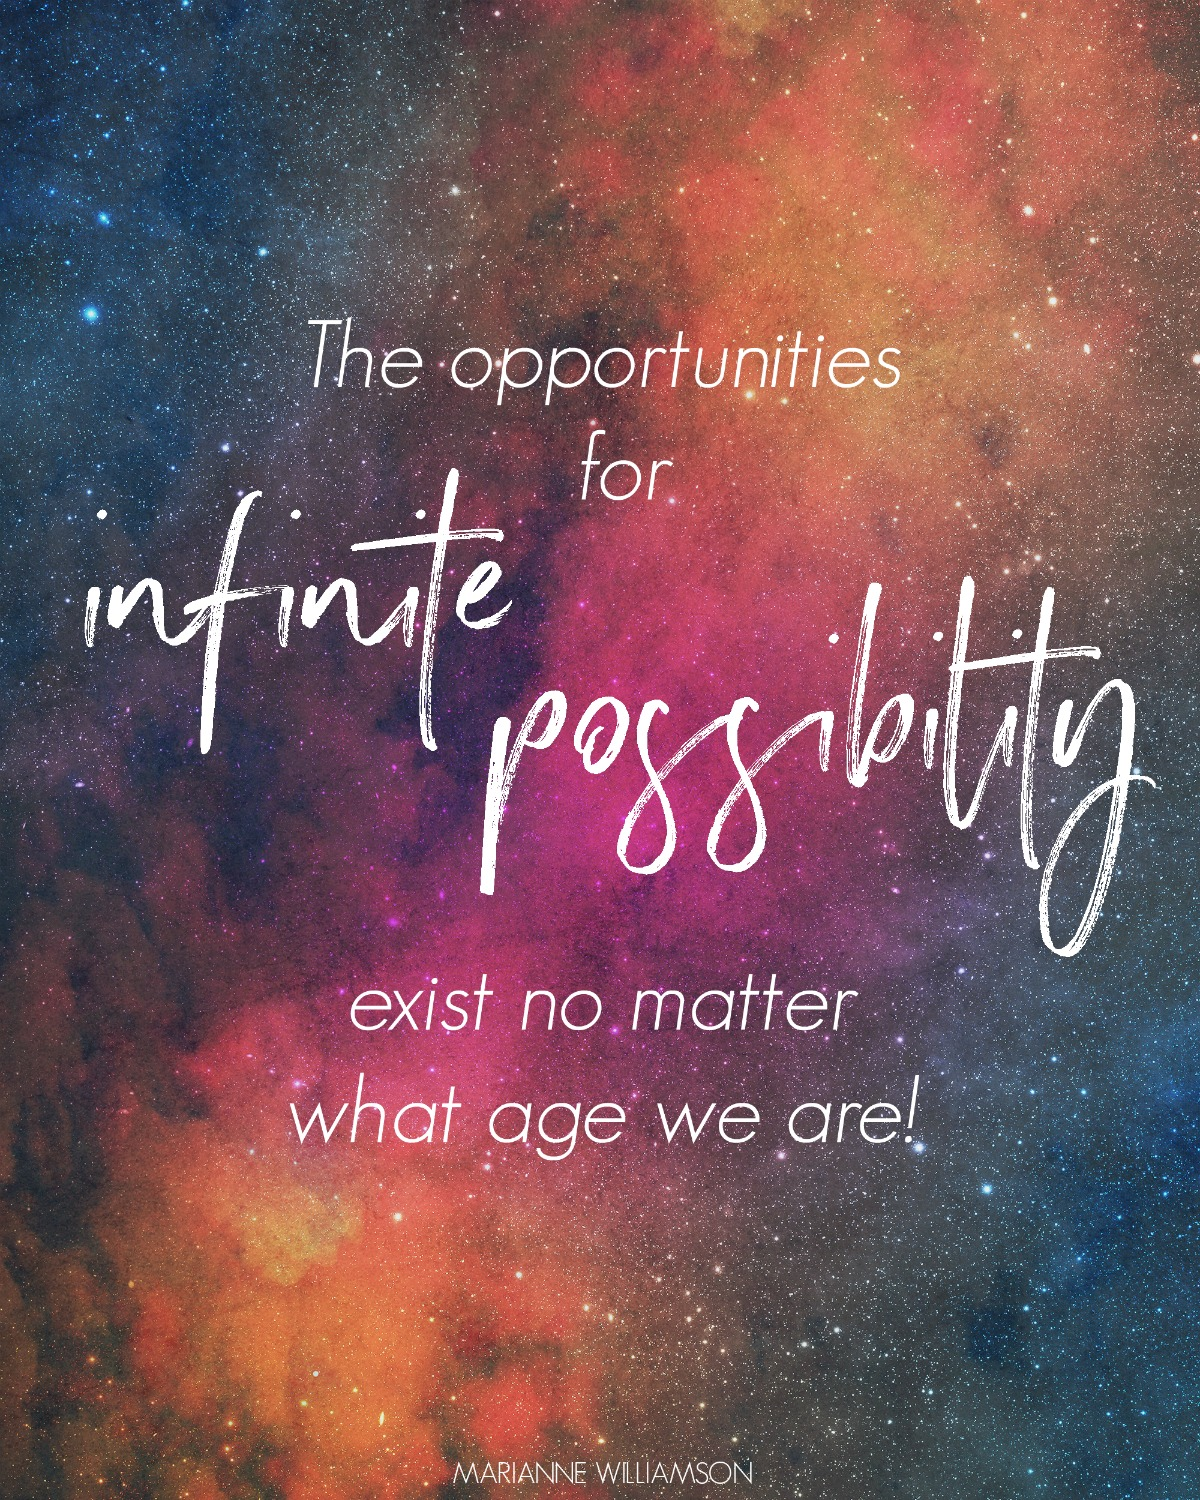 The opportunities for infinite possibility exist no matter what age we are. Marianne Williamson. Circle of Daydreams. www.circleofdaydreams.com